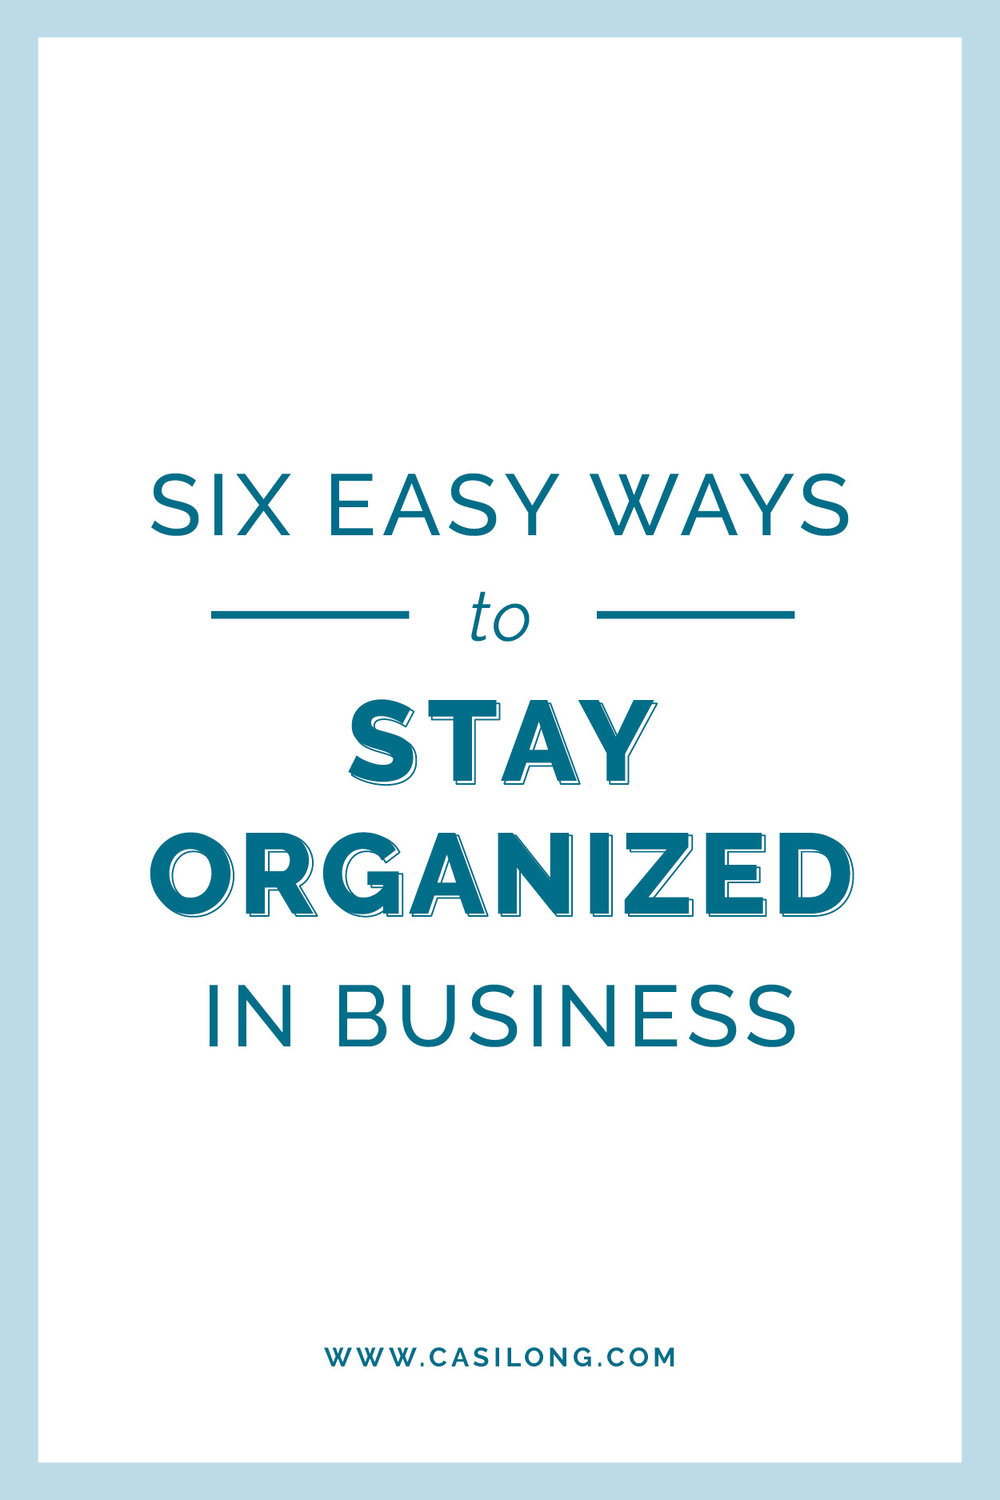 Six ways to stay organized in Business | casilong.com/blog | #casilongdesign #fearlesspursuit